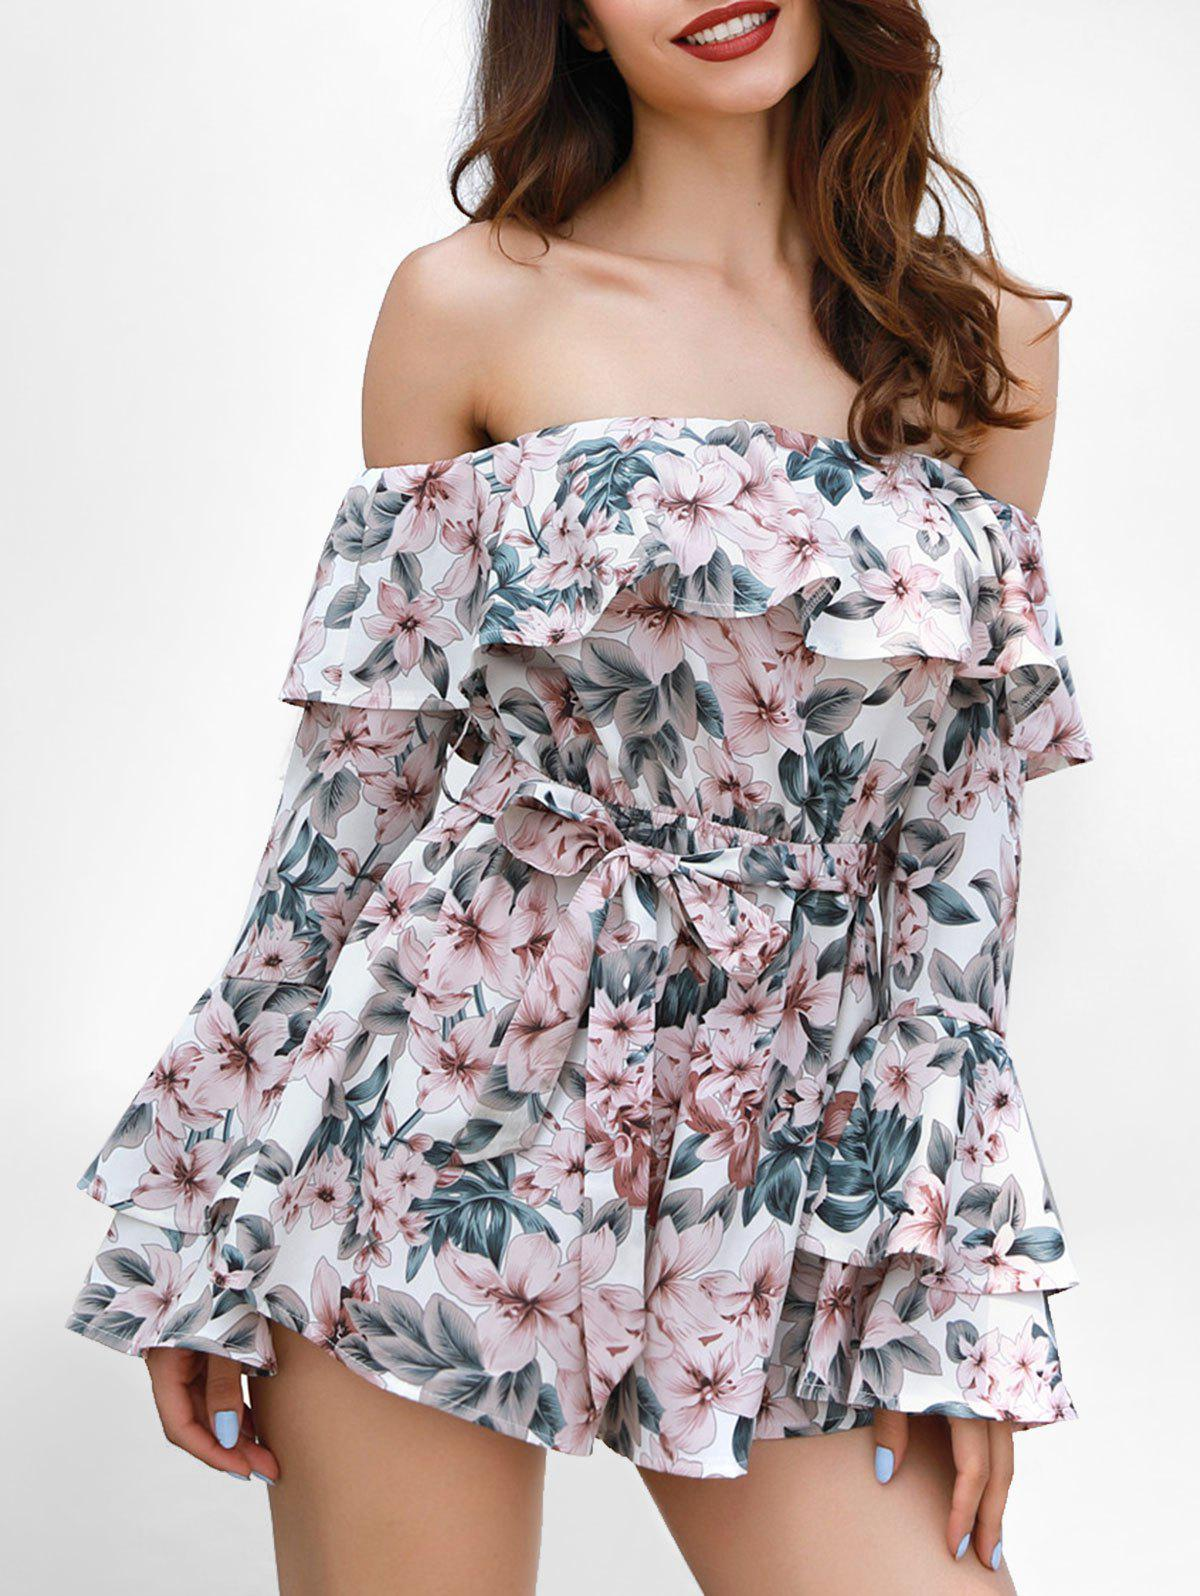 Off The Shoulder Floral Print Romper charming off the shoulder floral print women s romper